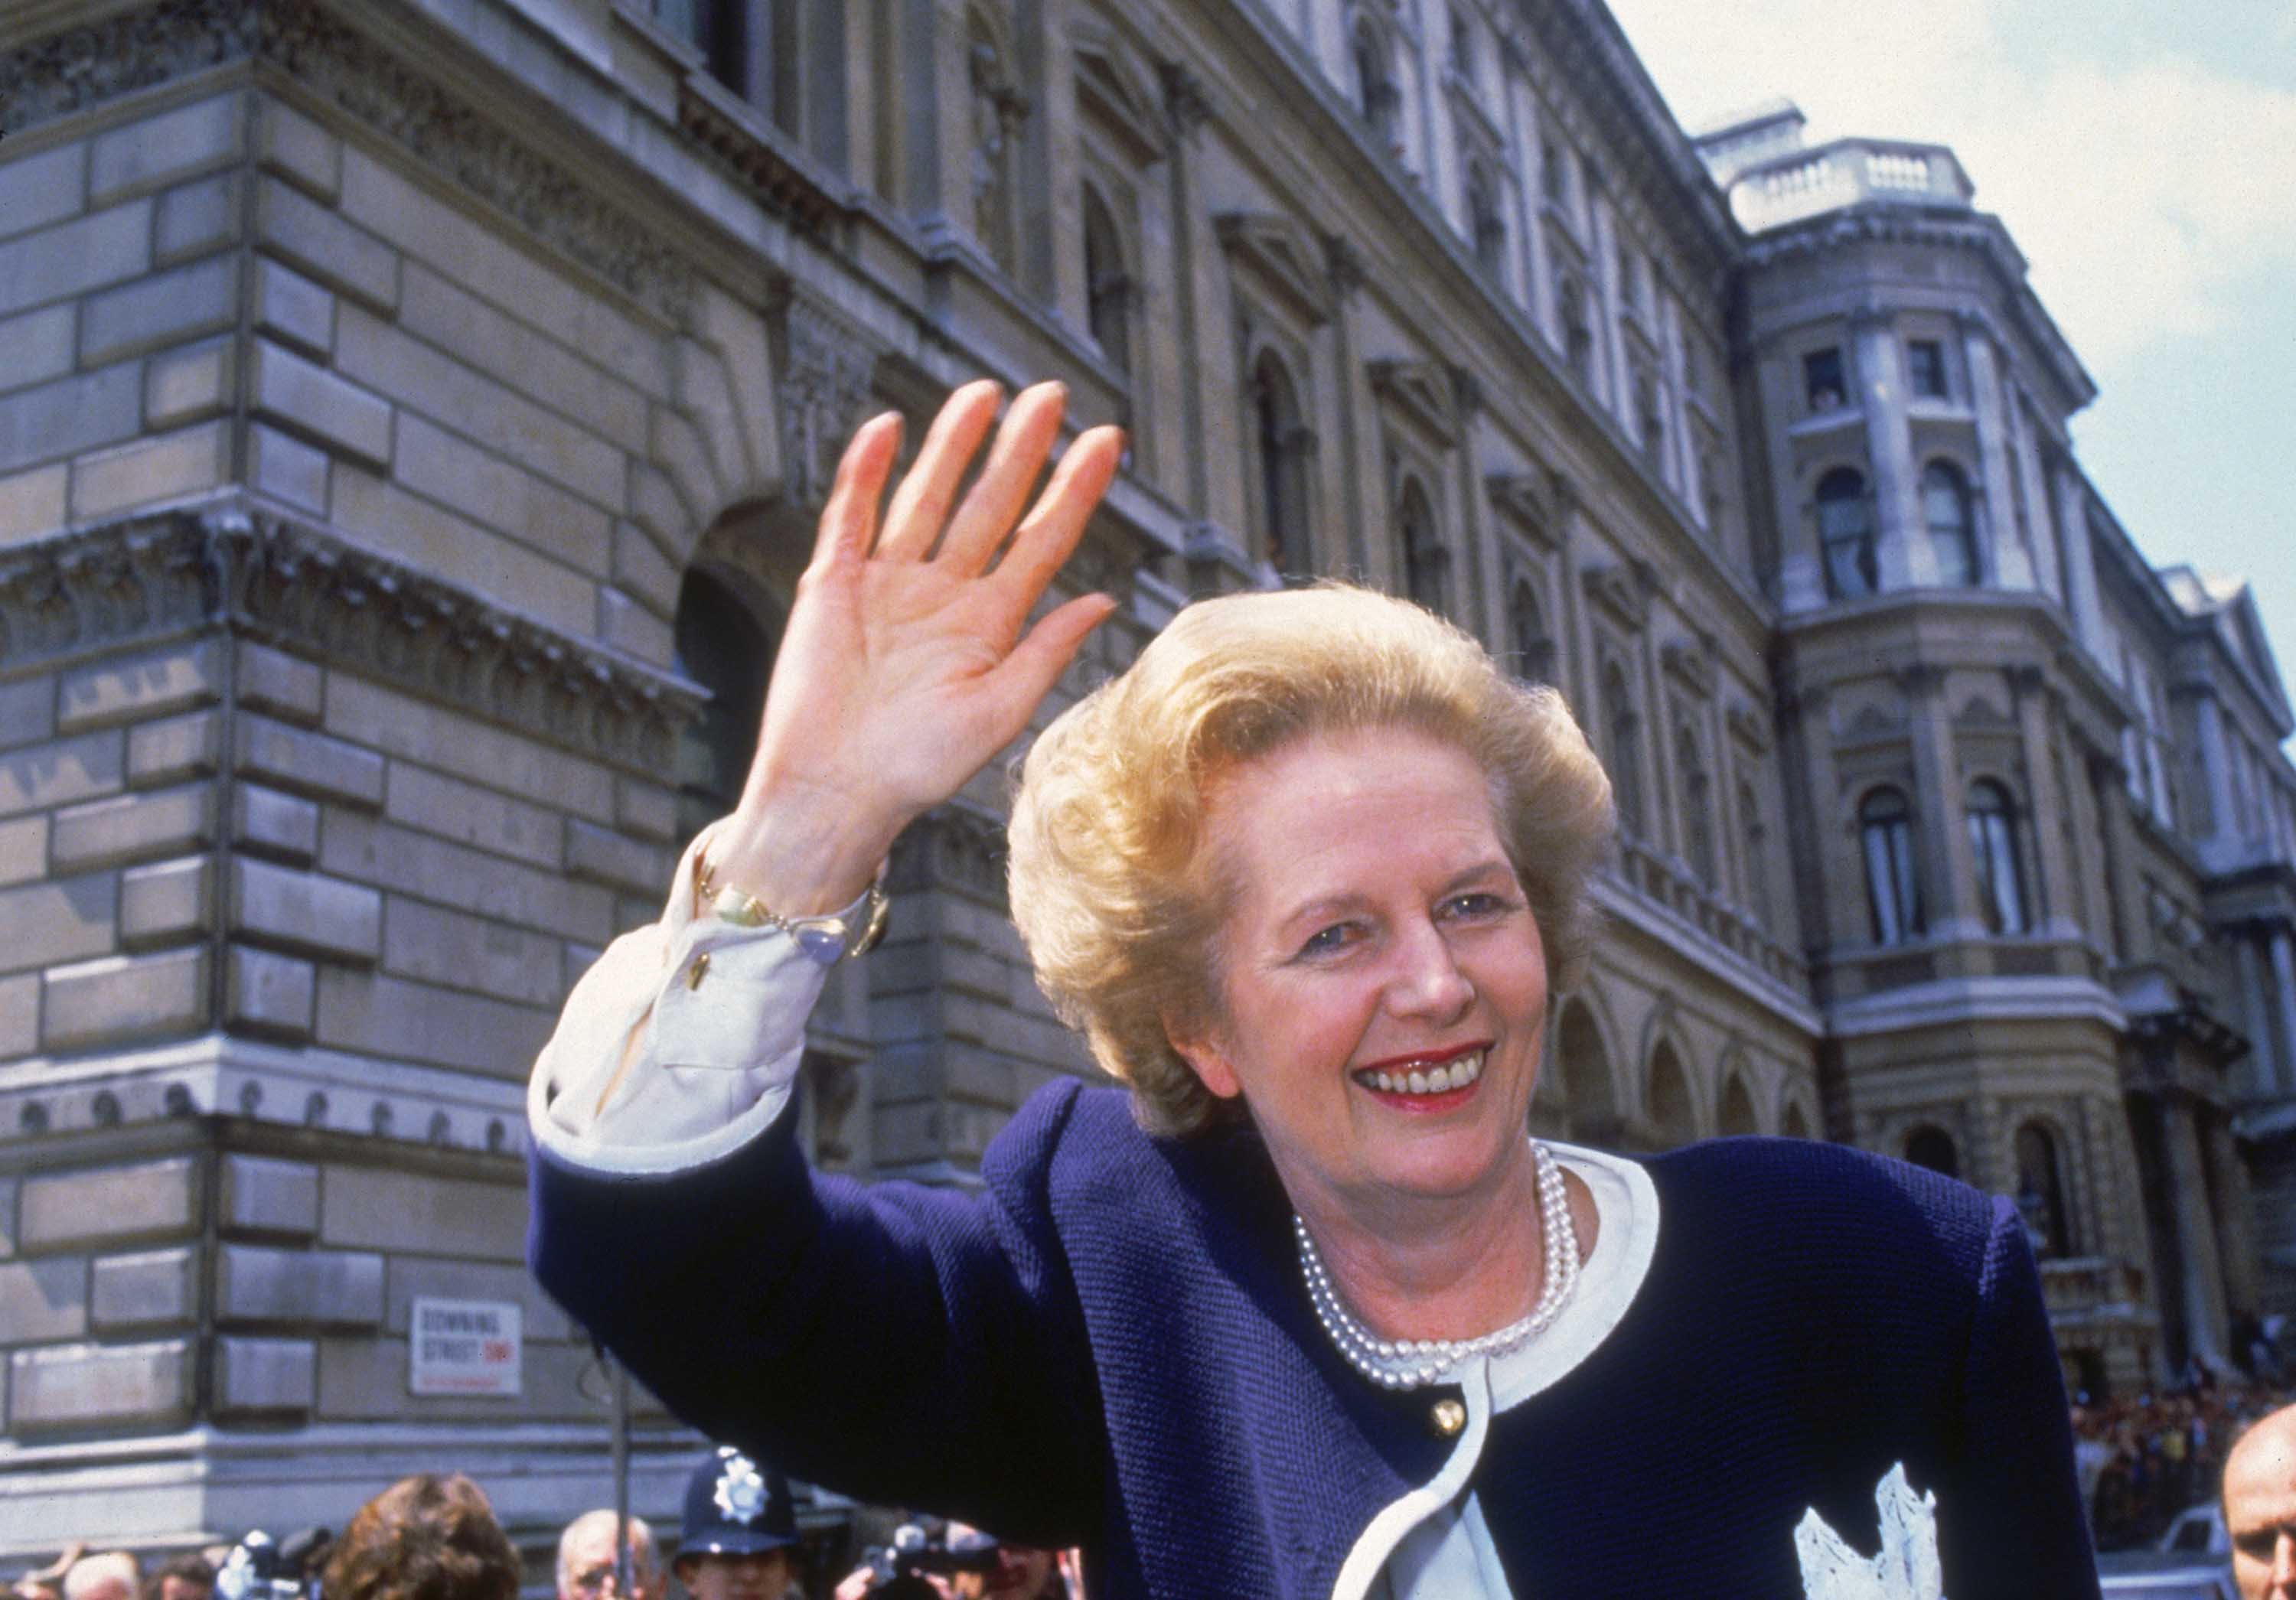 British Prime Minister Margaret Thatcher waves outside 10 Downing Street in London on election day, June 11, 1987. The vote resulted in the third consecutive victory for Thatcher's Conservative Party. Photo: Fox Photos/Hulton Archive/Getty Images